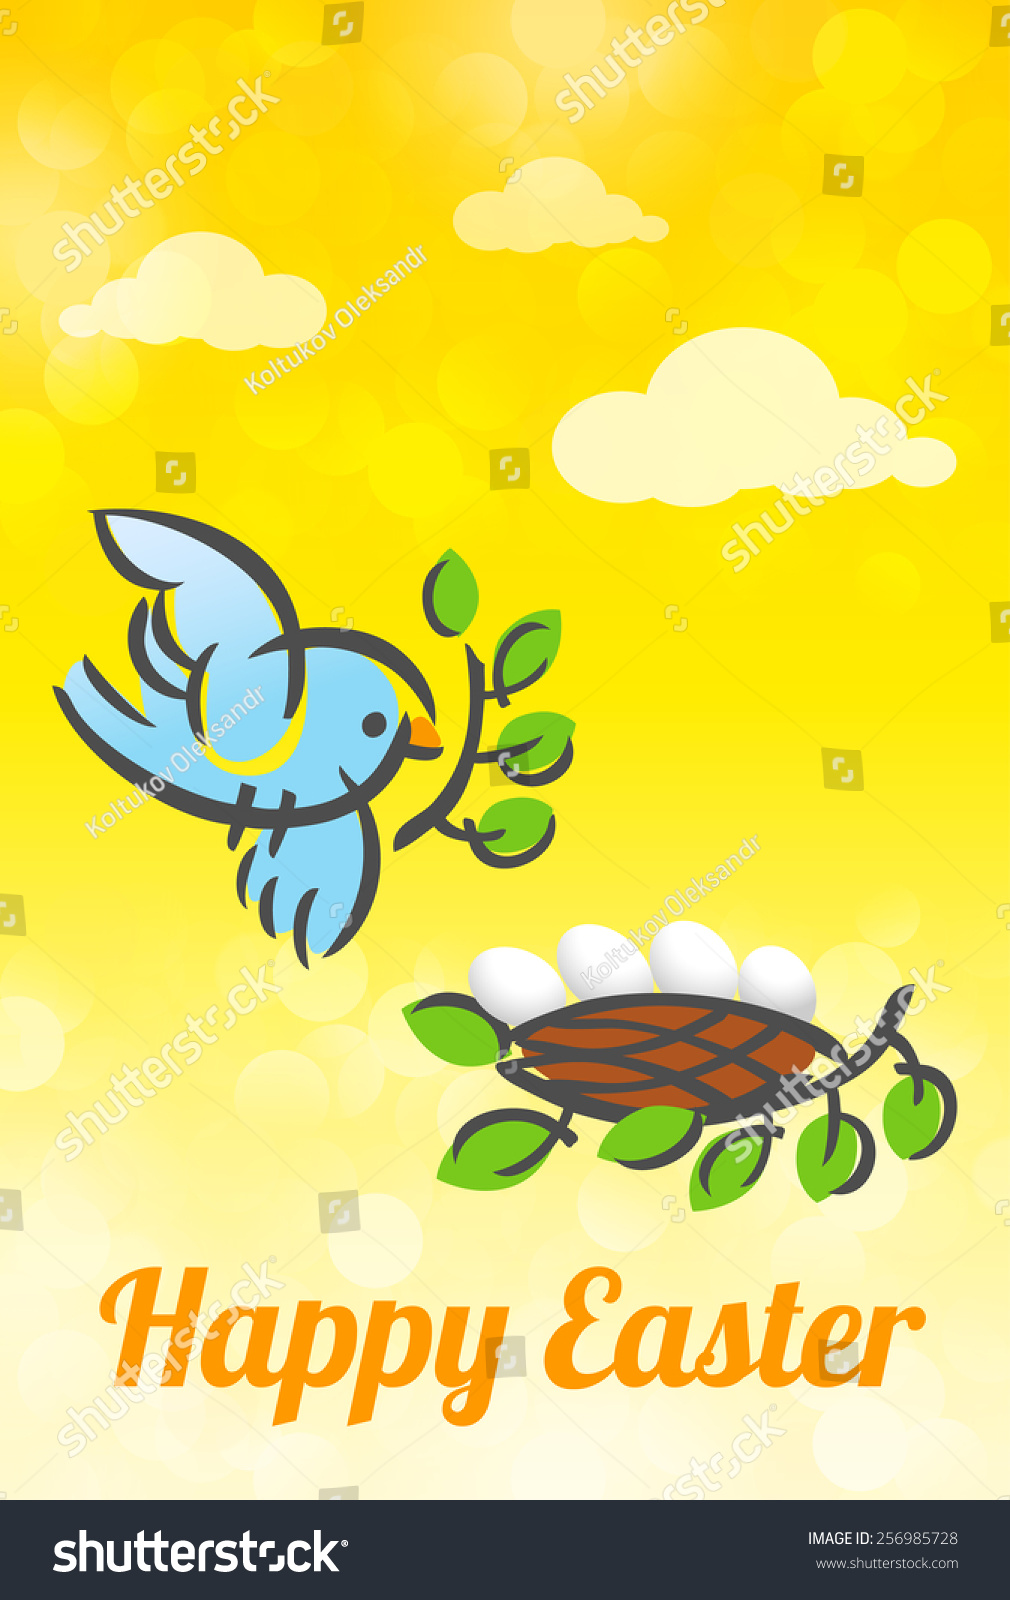 Happy easter vector card holy week stock vector 256985728 shutterstock happy easter vector card holy week greetings flying animated mother bird and eggs in m4hsunfo